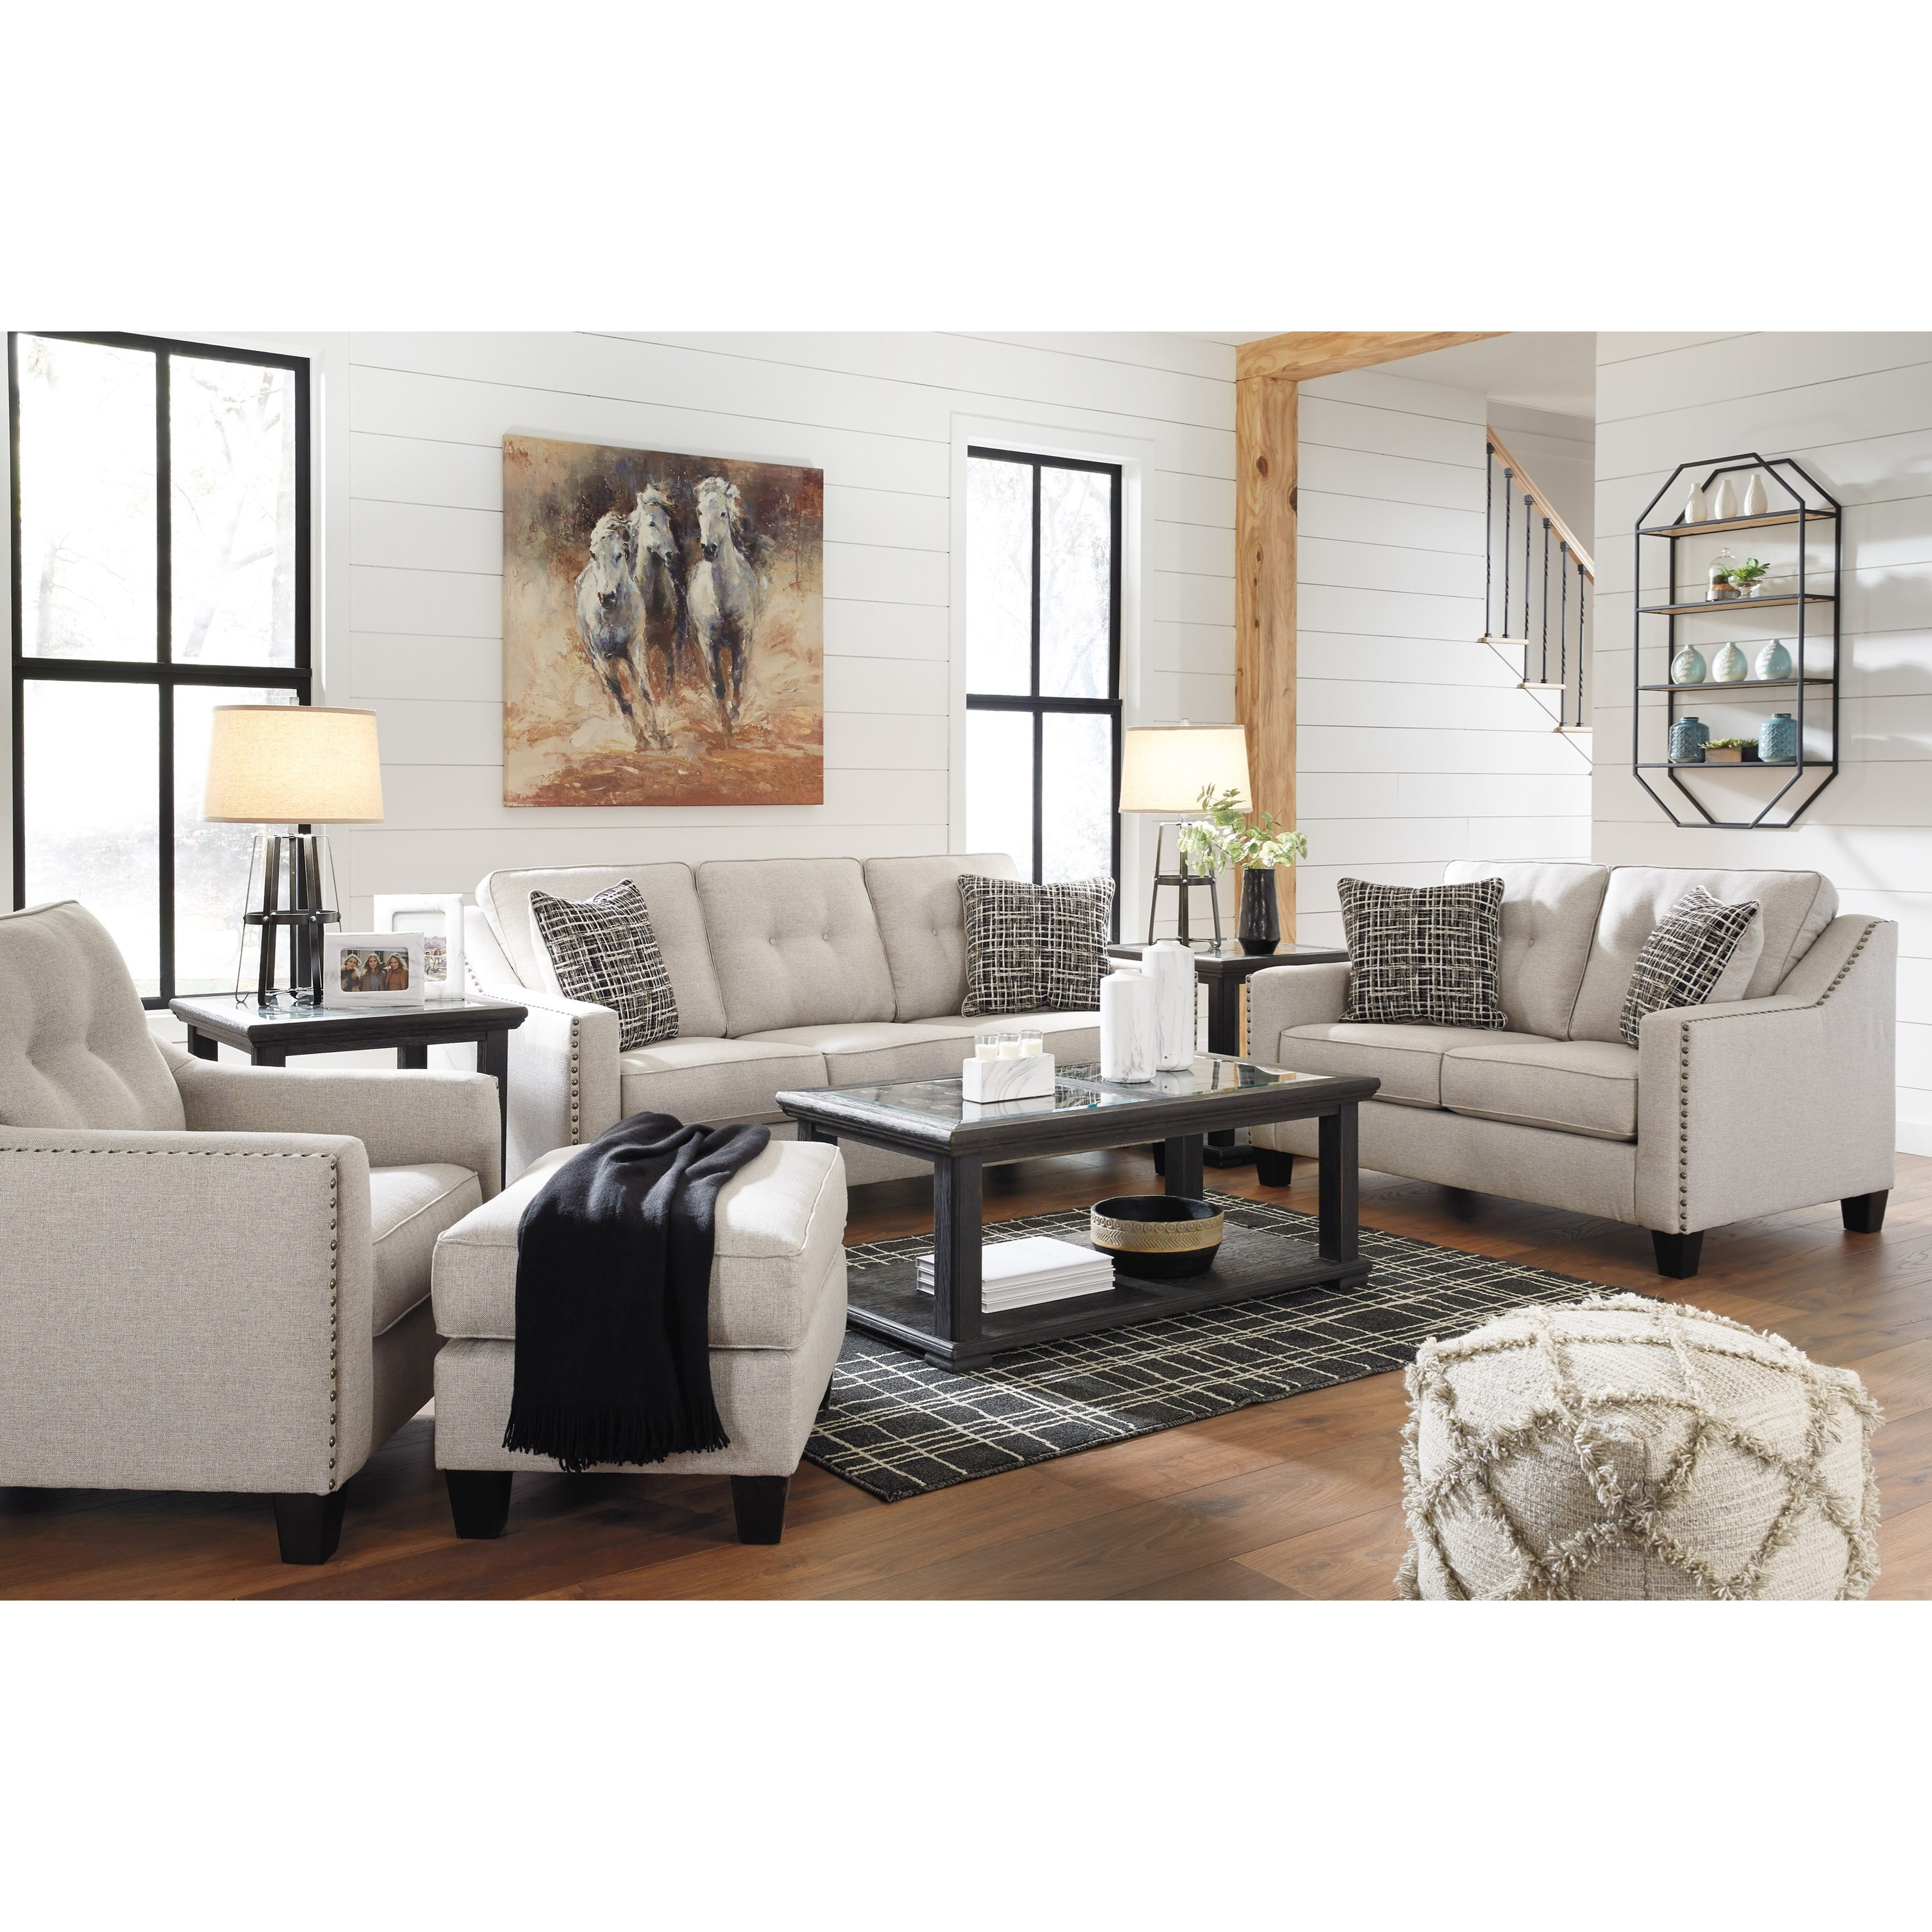 Benchcraft marrero living room group miskelly furniture for Living room furniture groups